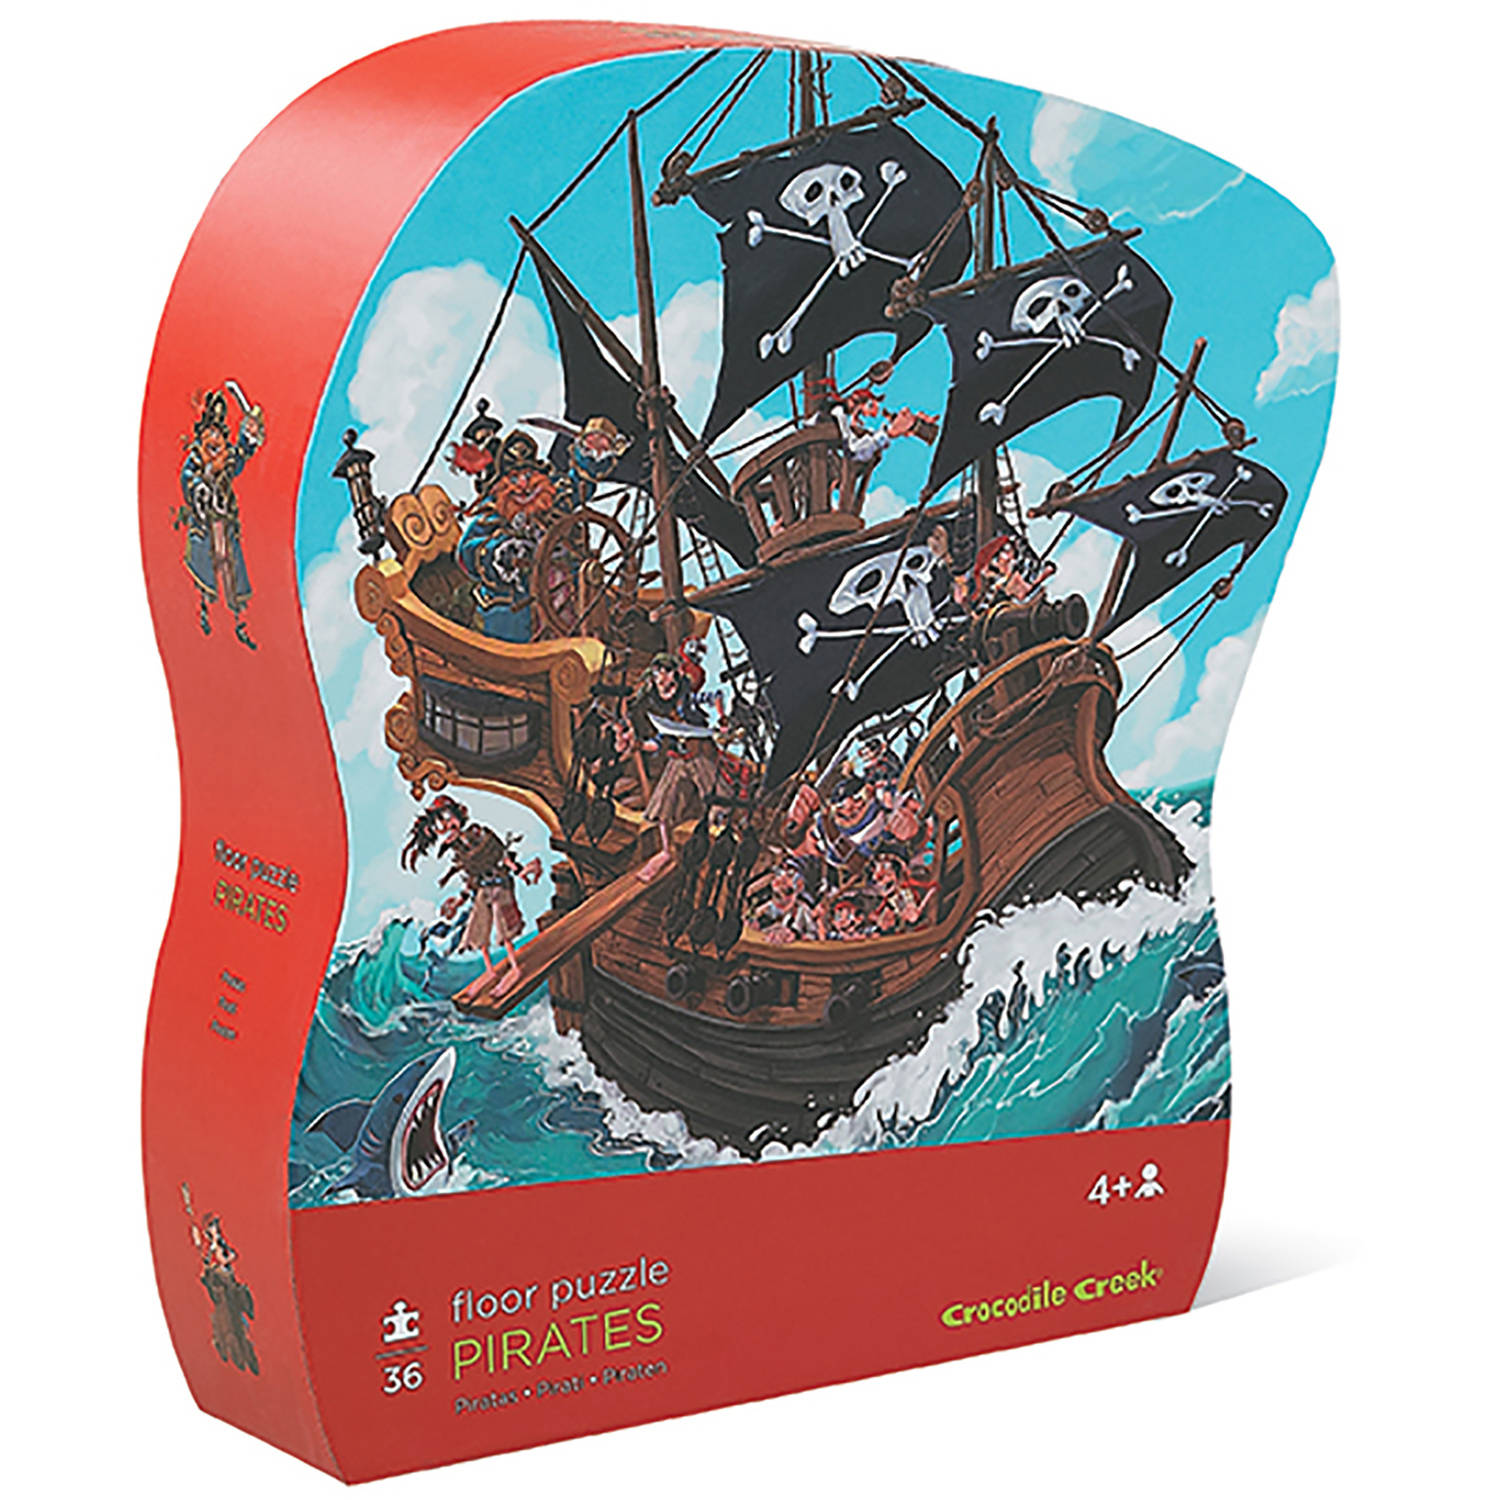 Crocodile Creek Pirates 36-Piece Floor Jigsaw Puzzle